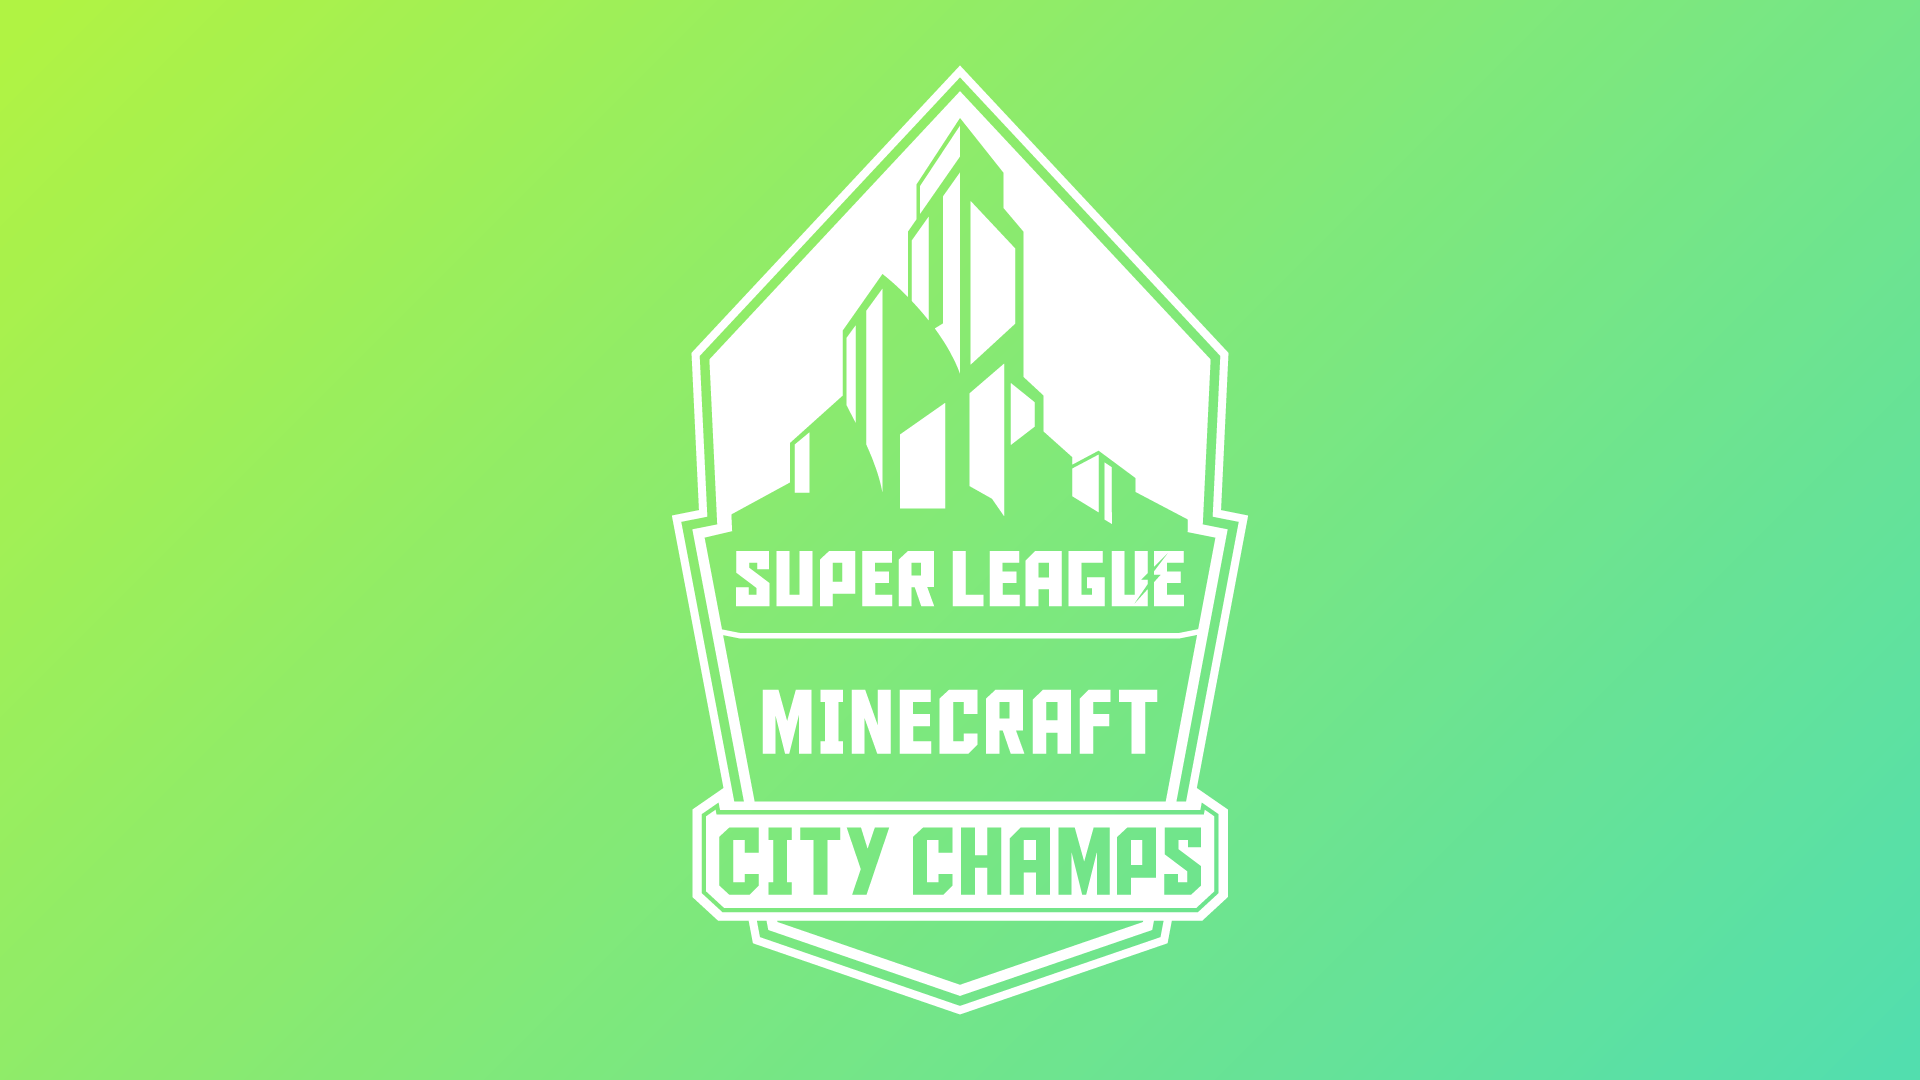 City Champs 101 Minecraft Season 4 Super League Gaming Circuit Questions Discussion